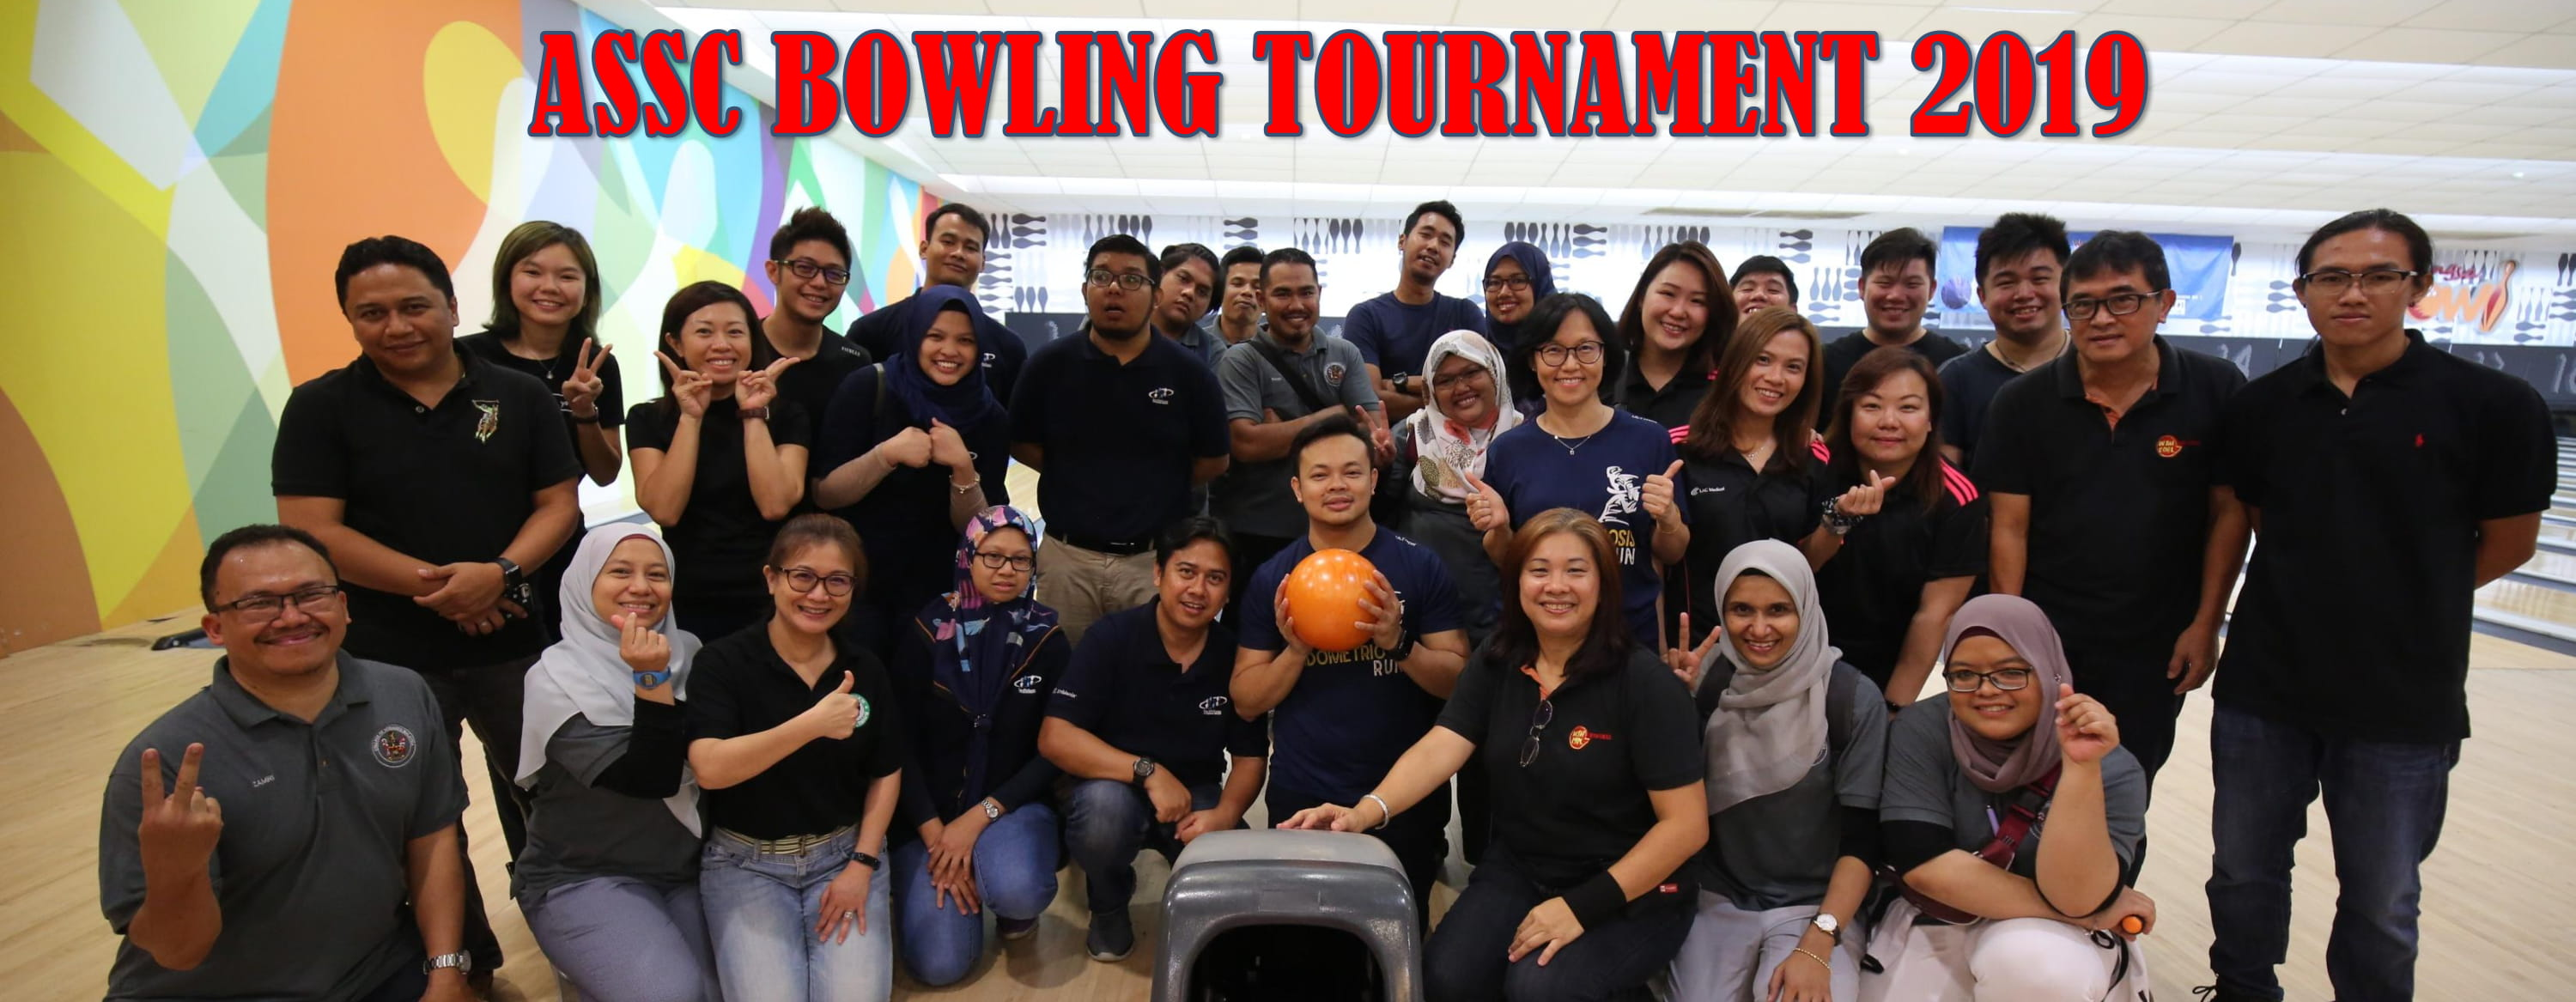 ASSC BOWLING TOURNAMENT 2019